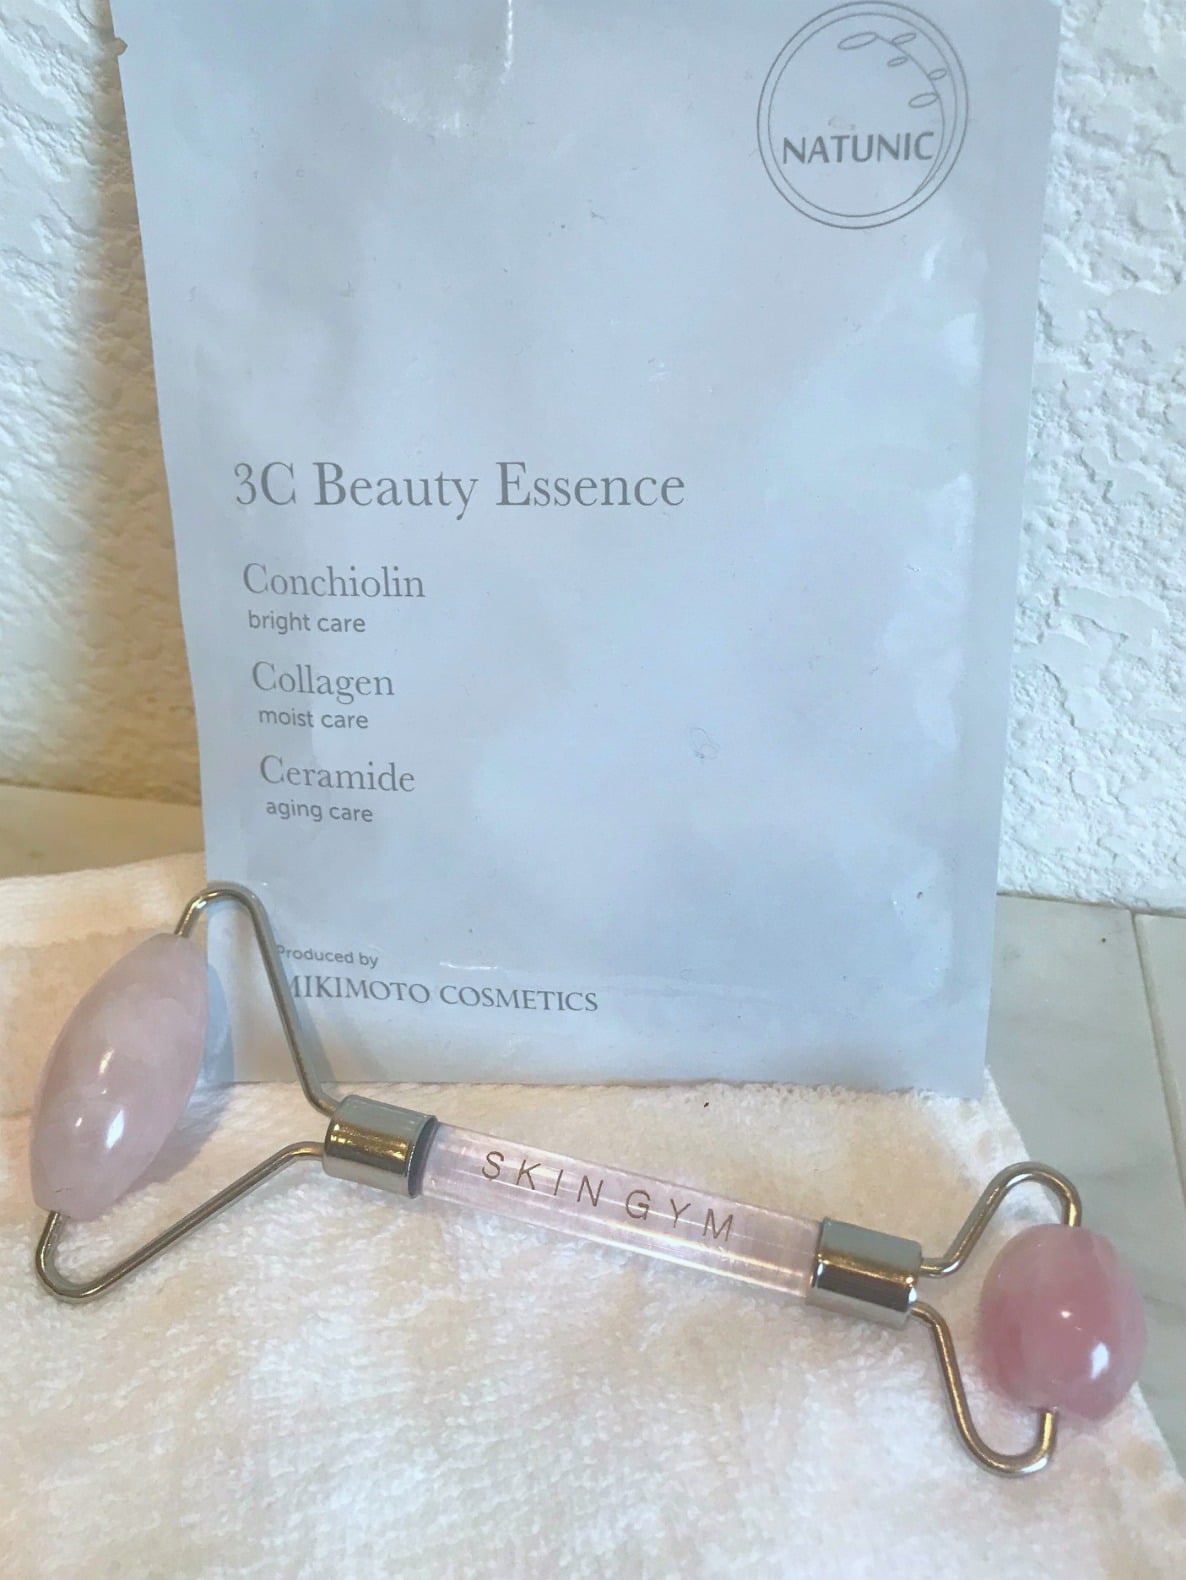 rose quartz roller and sheet mask on a well styled life